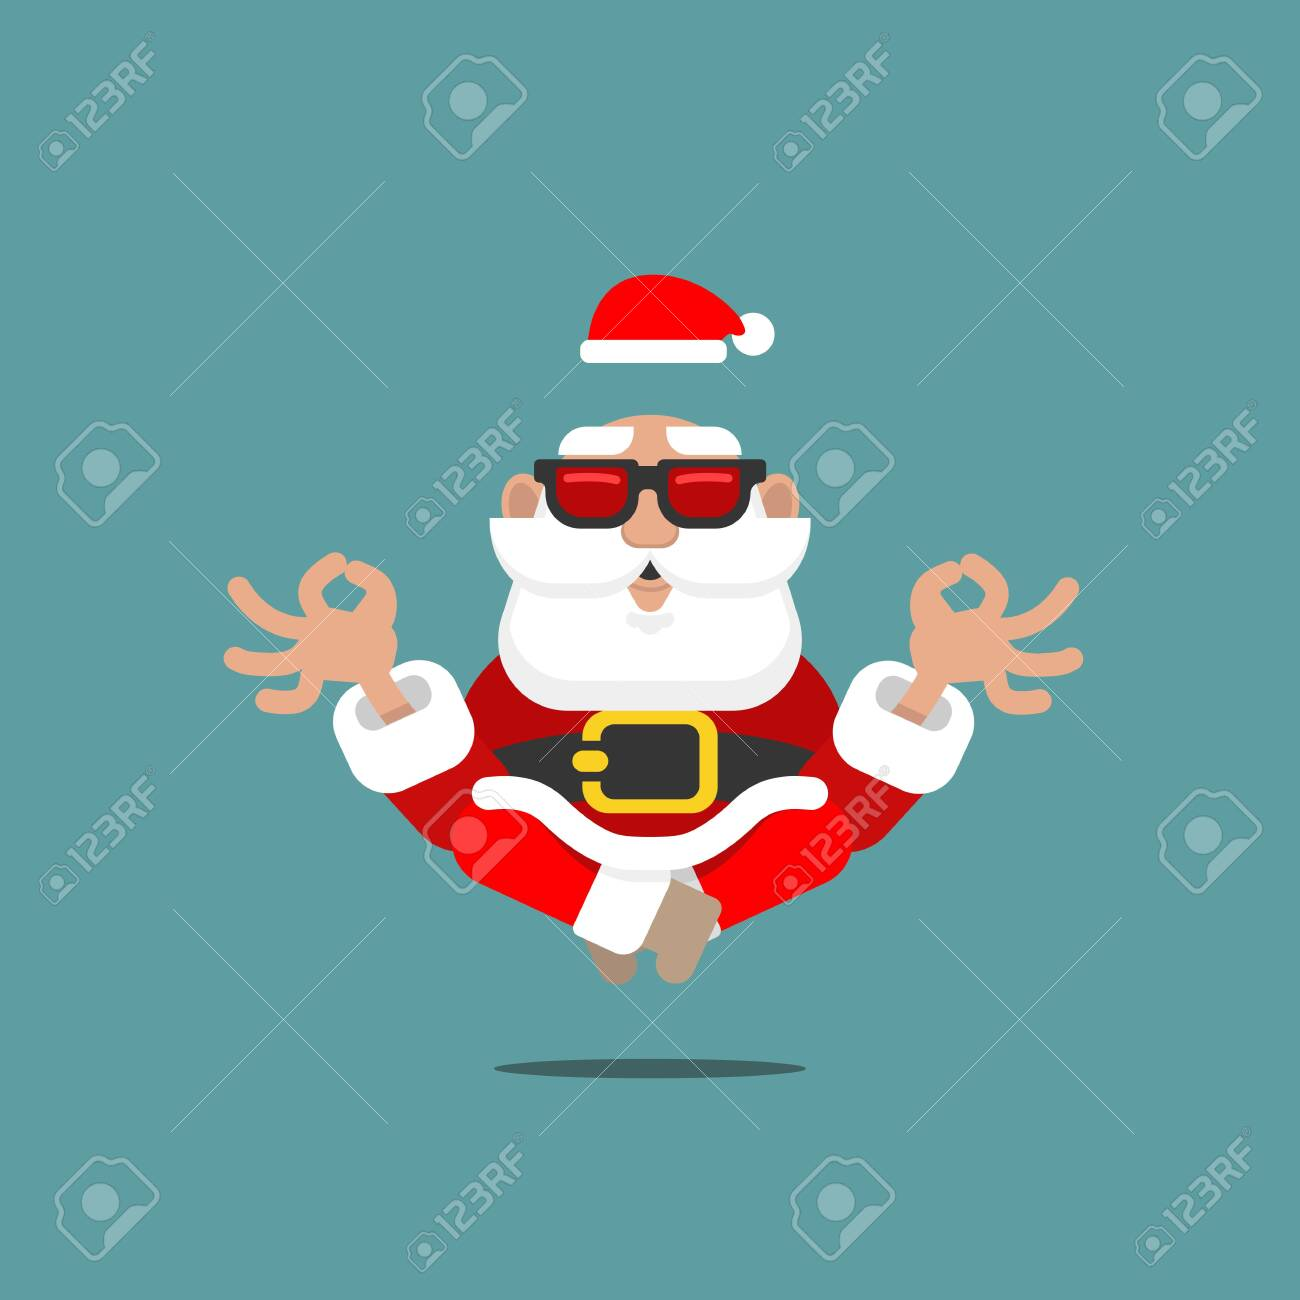 Older Santa Claus in meditation levitating in the air with sunglasses in a relaxing mental position of Yoga symbolizing a spiritual symbol of OM. - 131636933